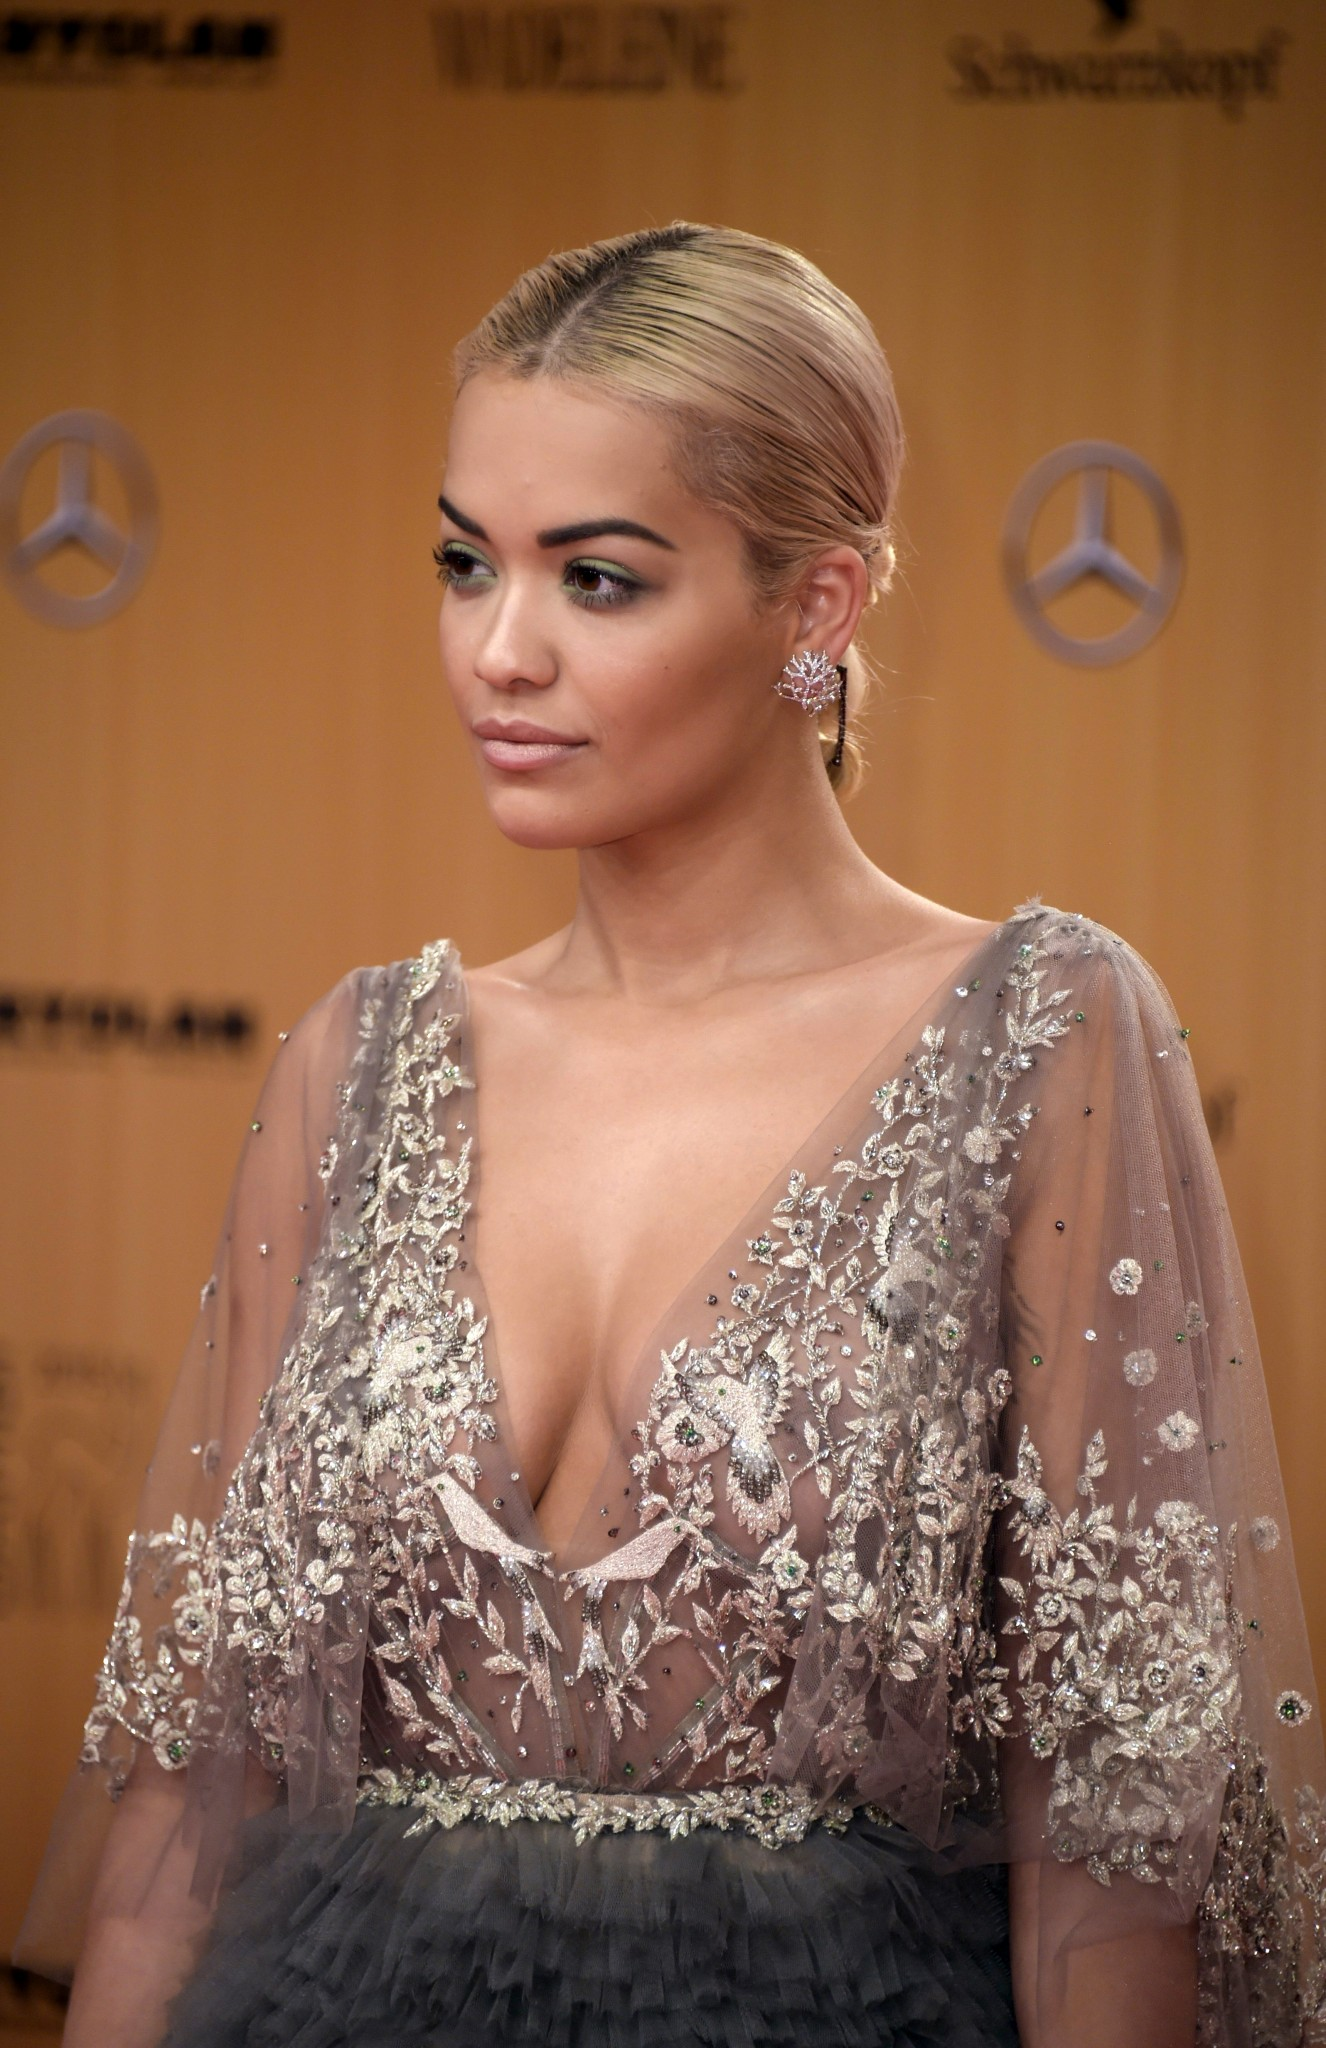 rita-ora-nipple-slip-at-bambi-awards-in-berlin-09